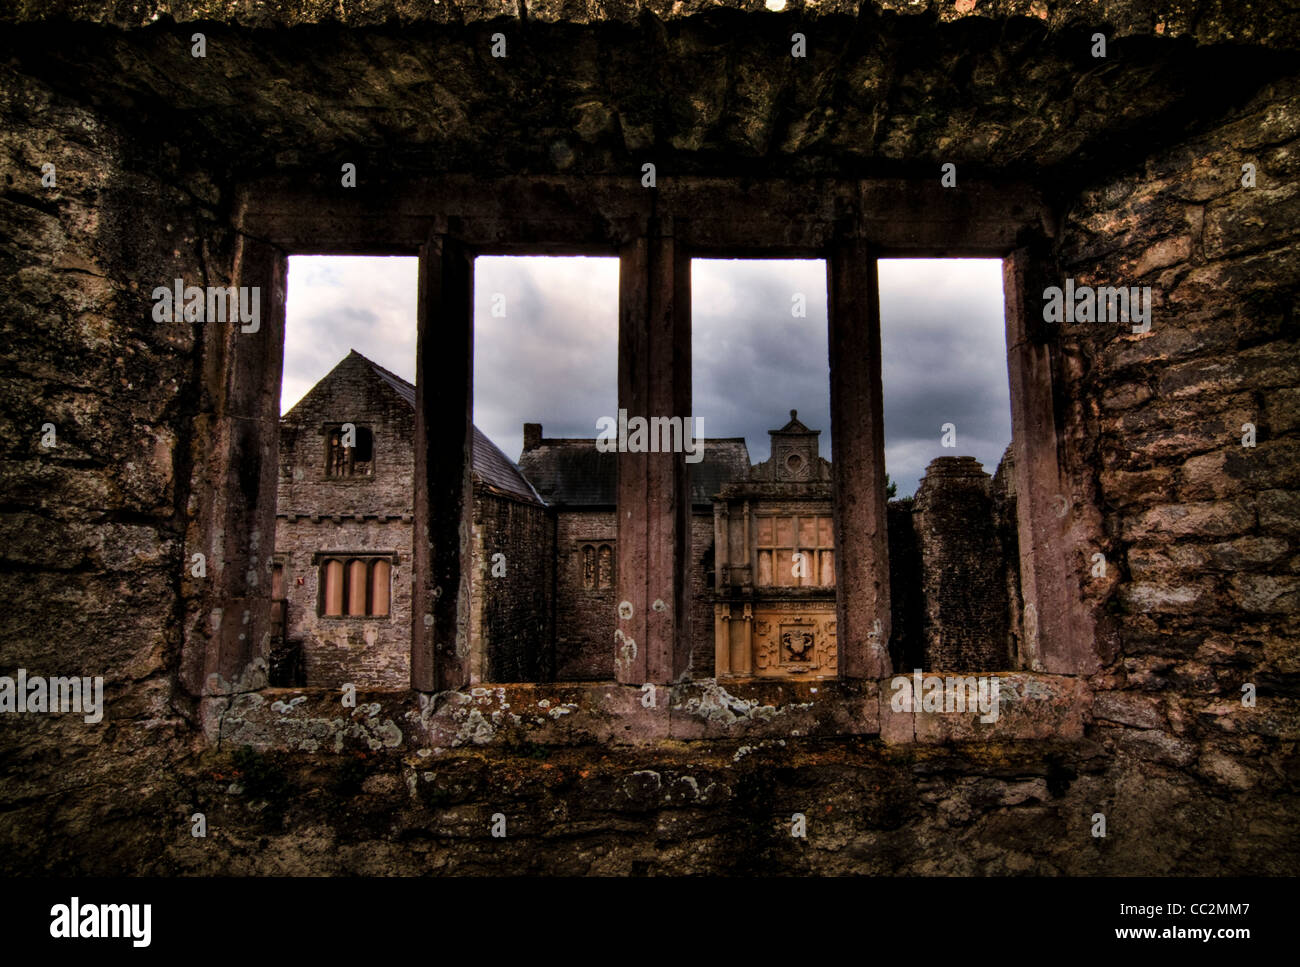 View through a stone window of ruined castle. Beaupre Castle medieval ruins in Wales. - Stock Image